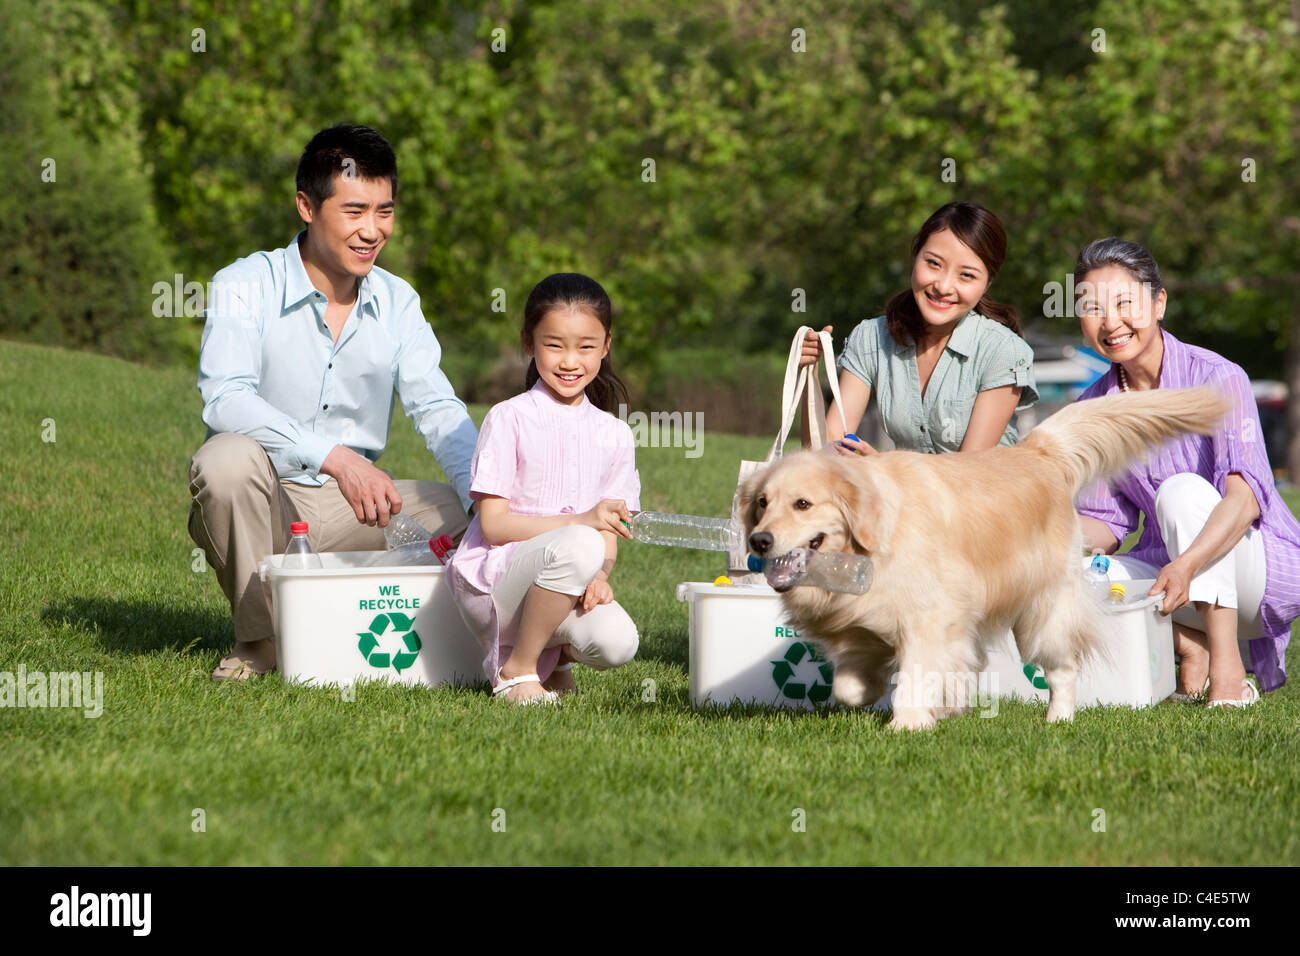 Family Recycling at the Park - Stock Image